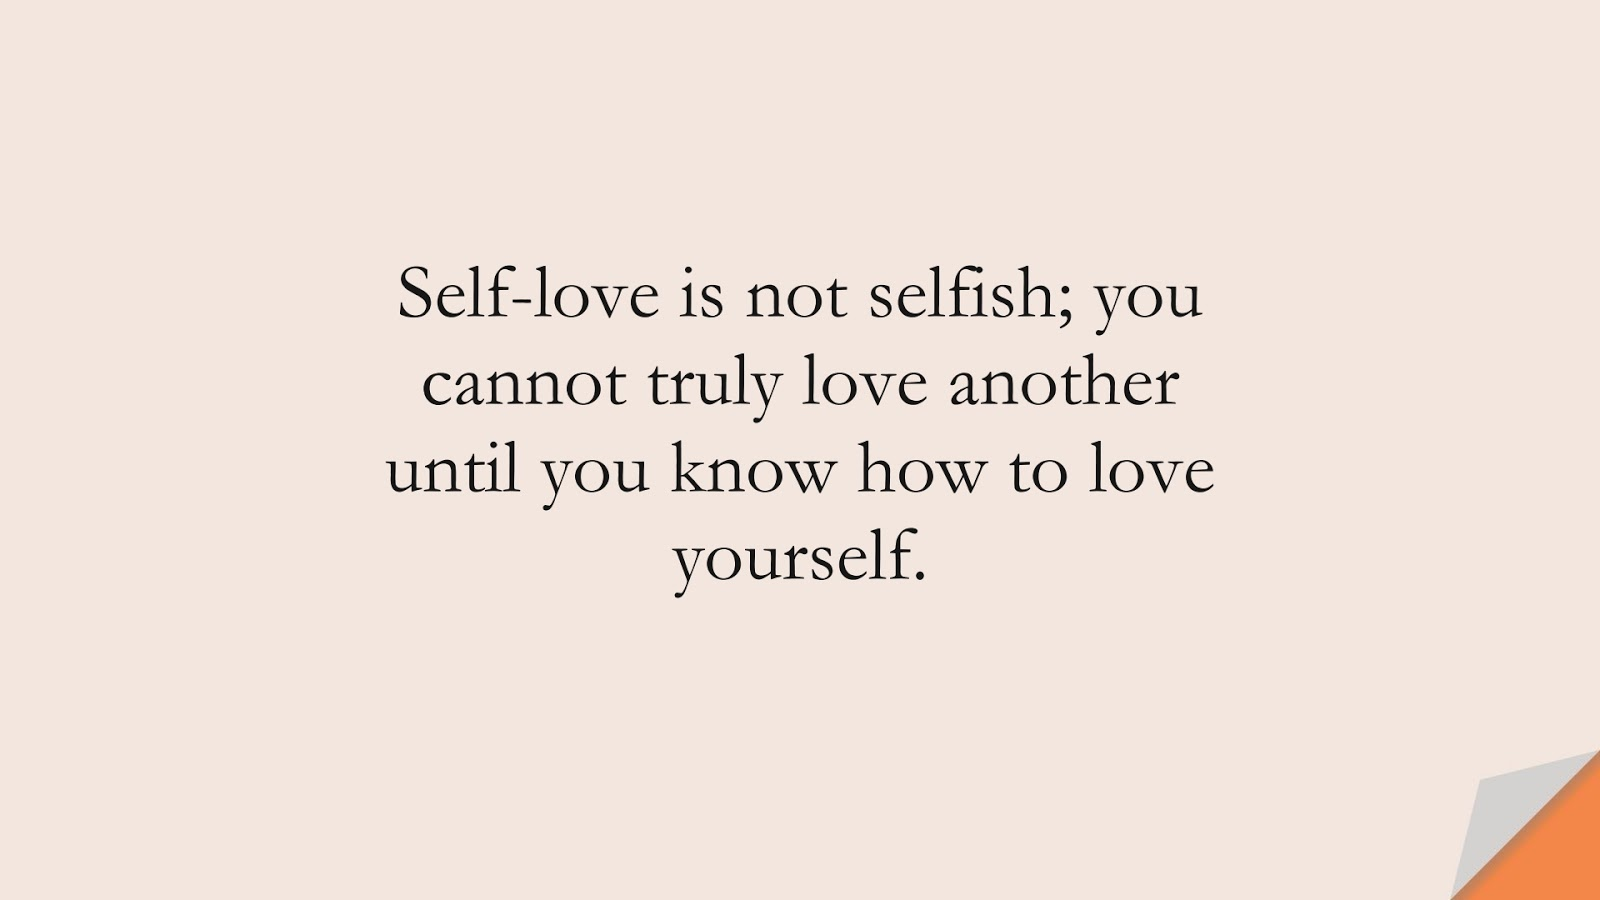 Self-love is not selfish; you cannot truly love another until you know how to love yourself.FALSE